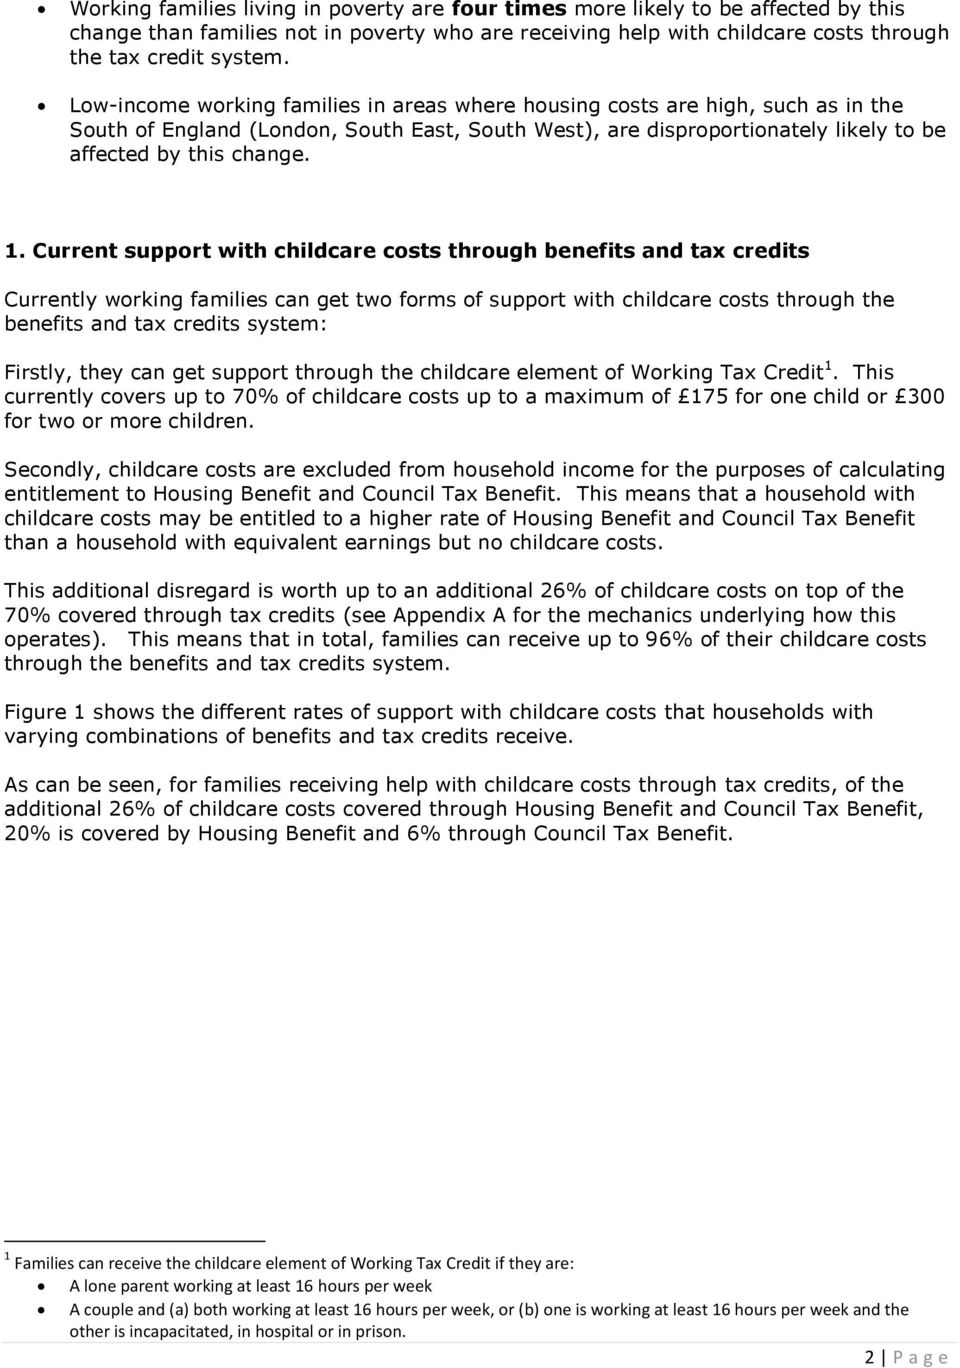 Current support with childcare costs through benefits and tax credits Currently working families can get two forms of support with childcare costs through the benefits and tax credits system: